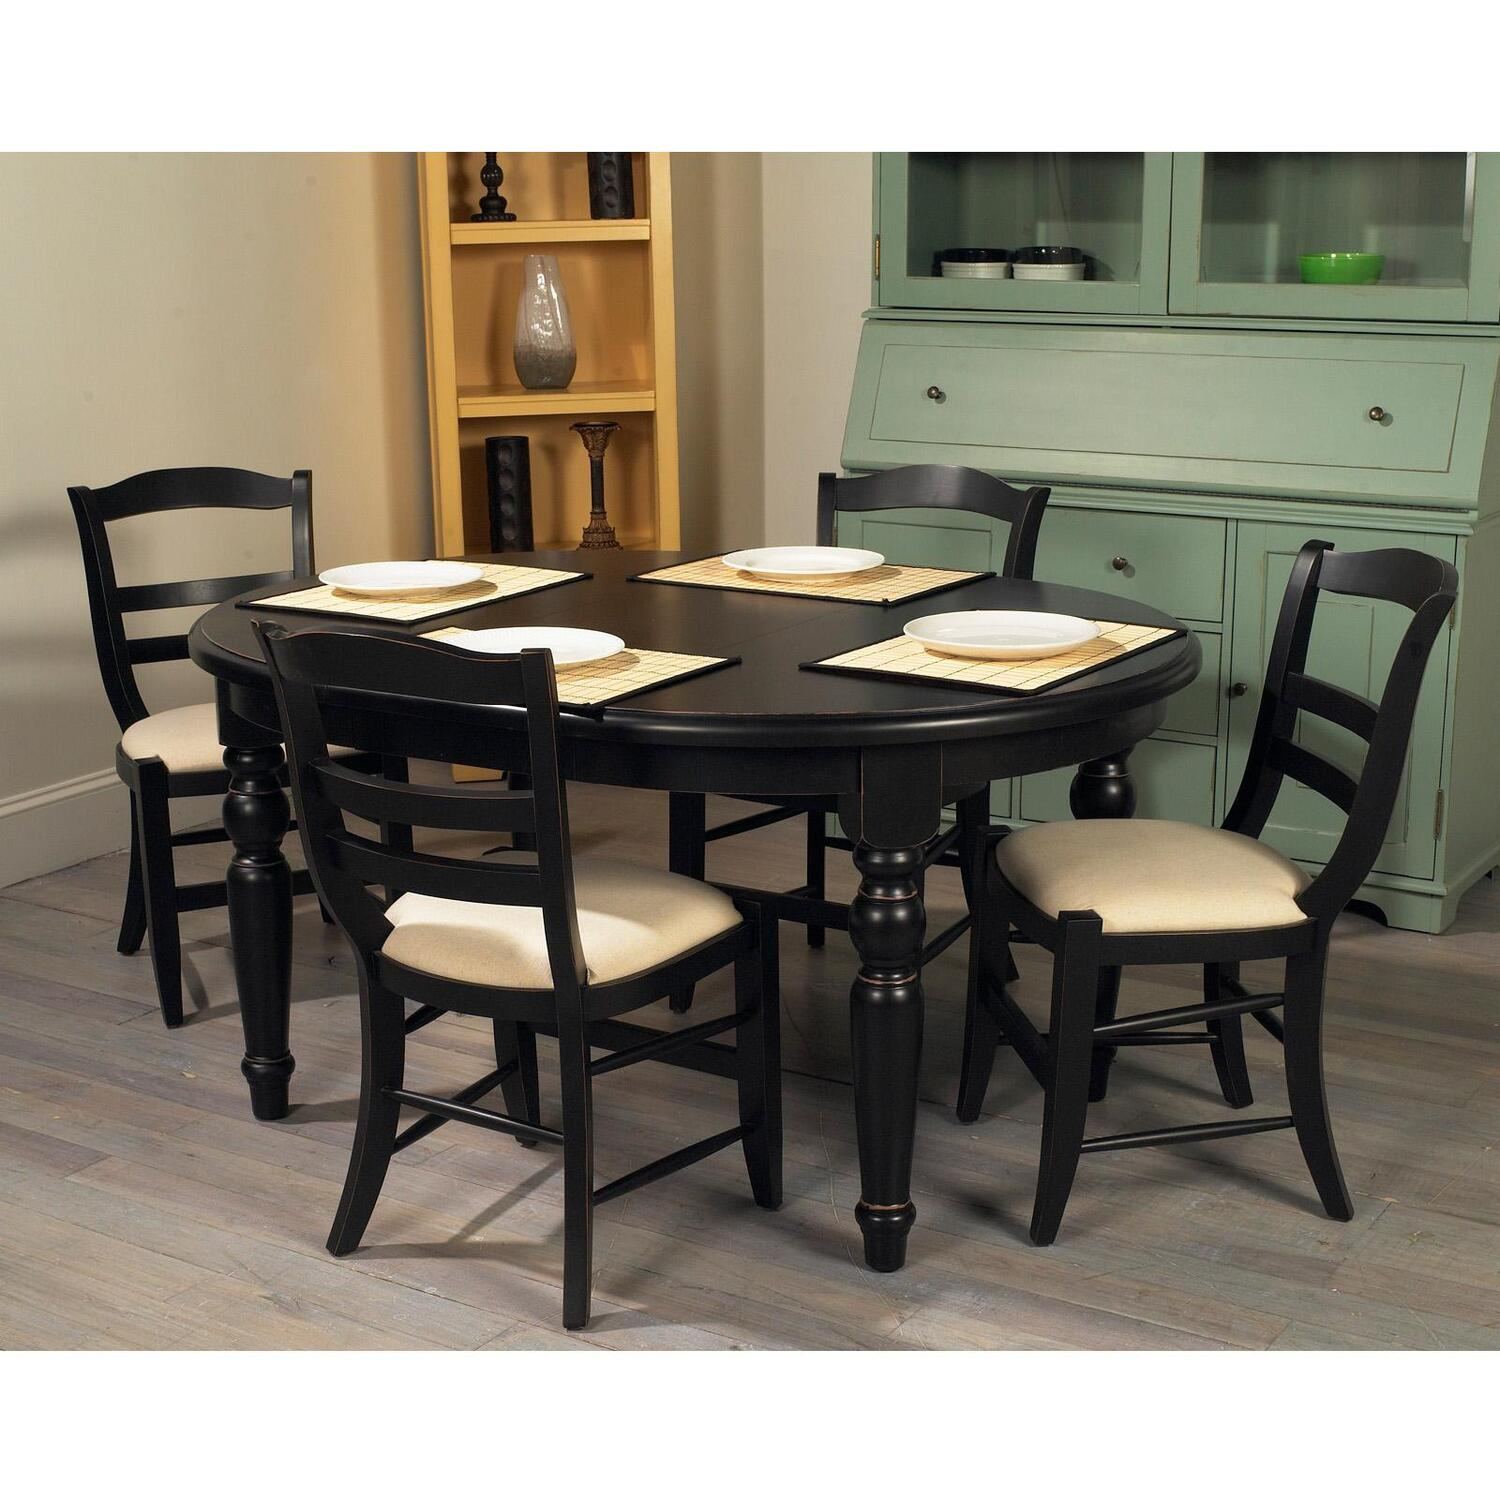 Dining table dress oval dining table for Dining table dressing